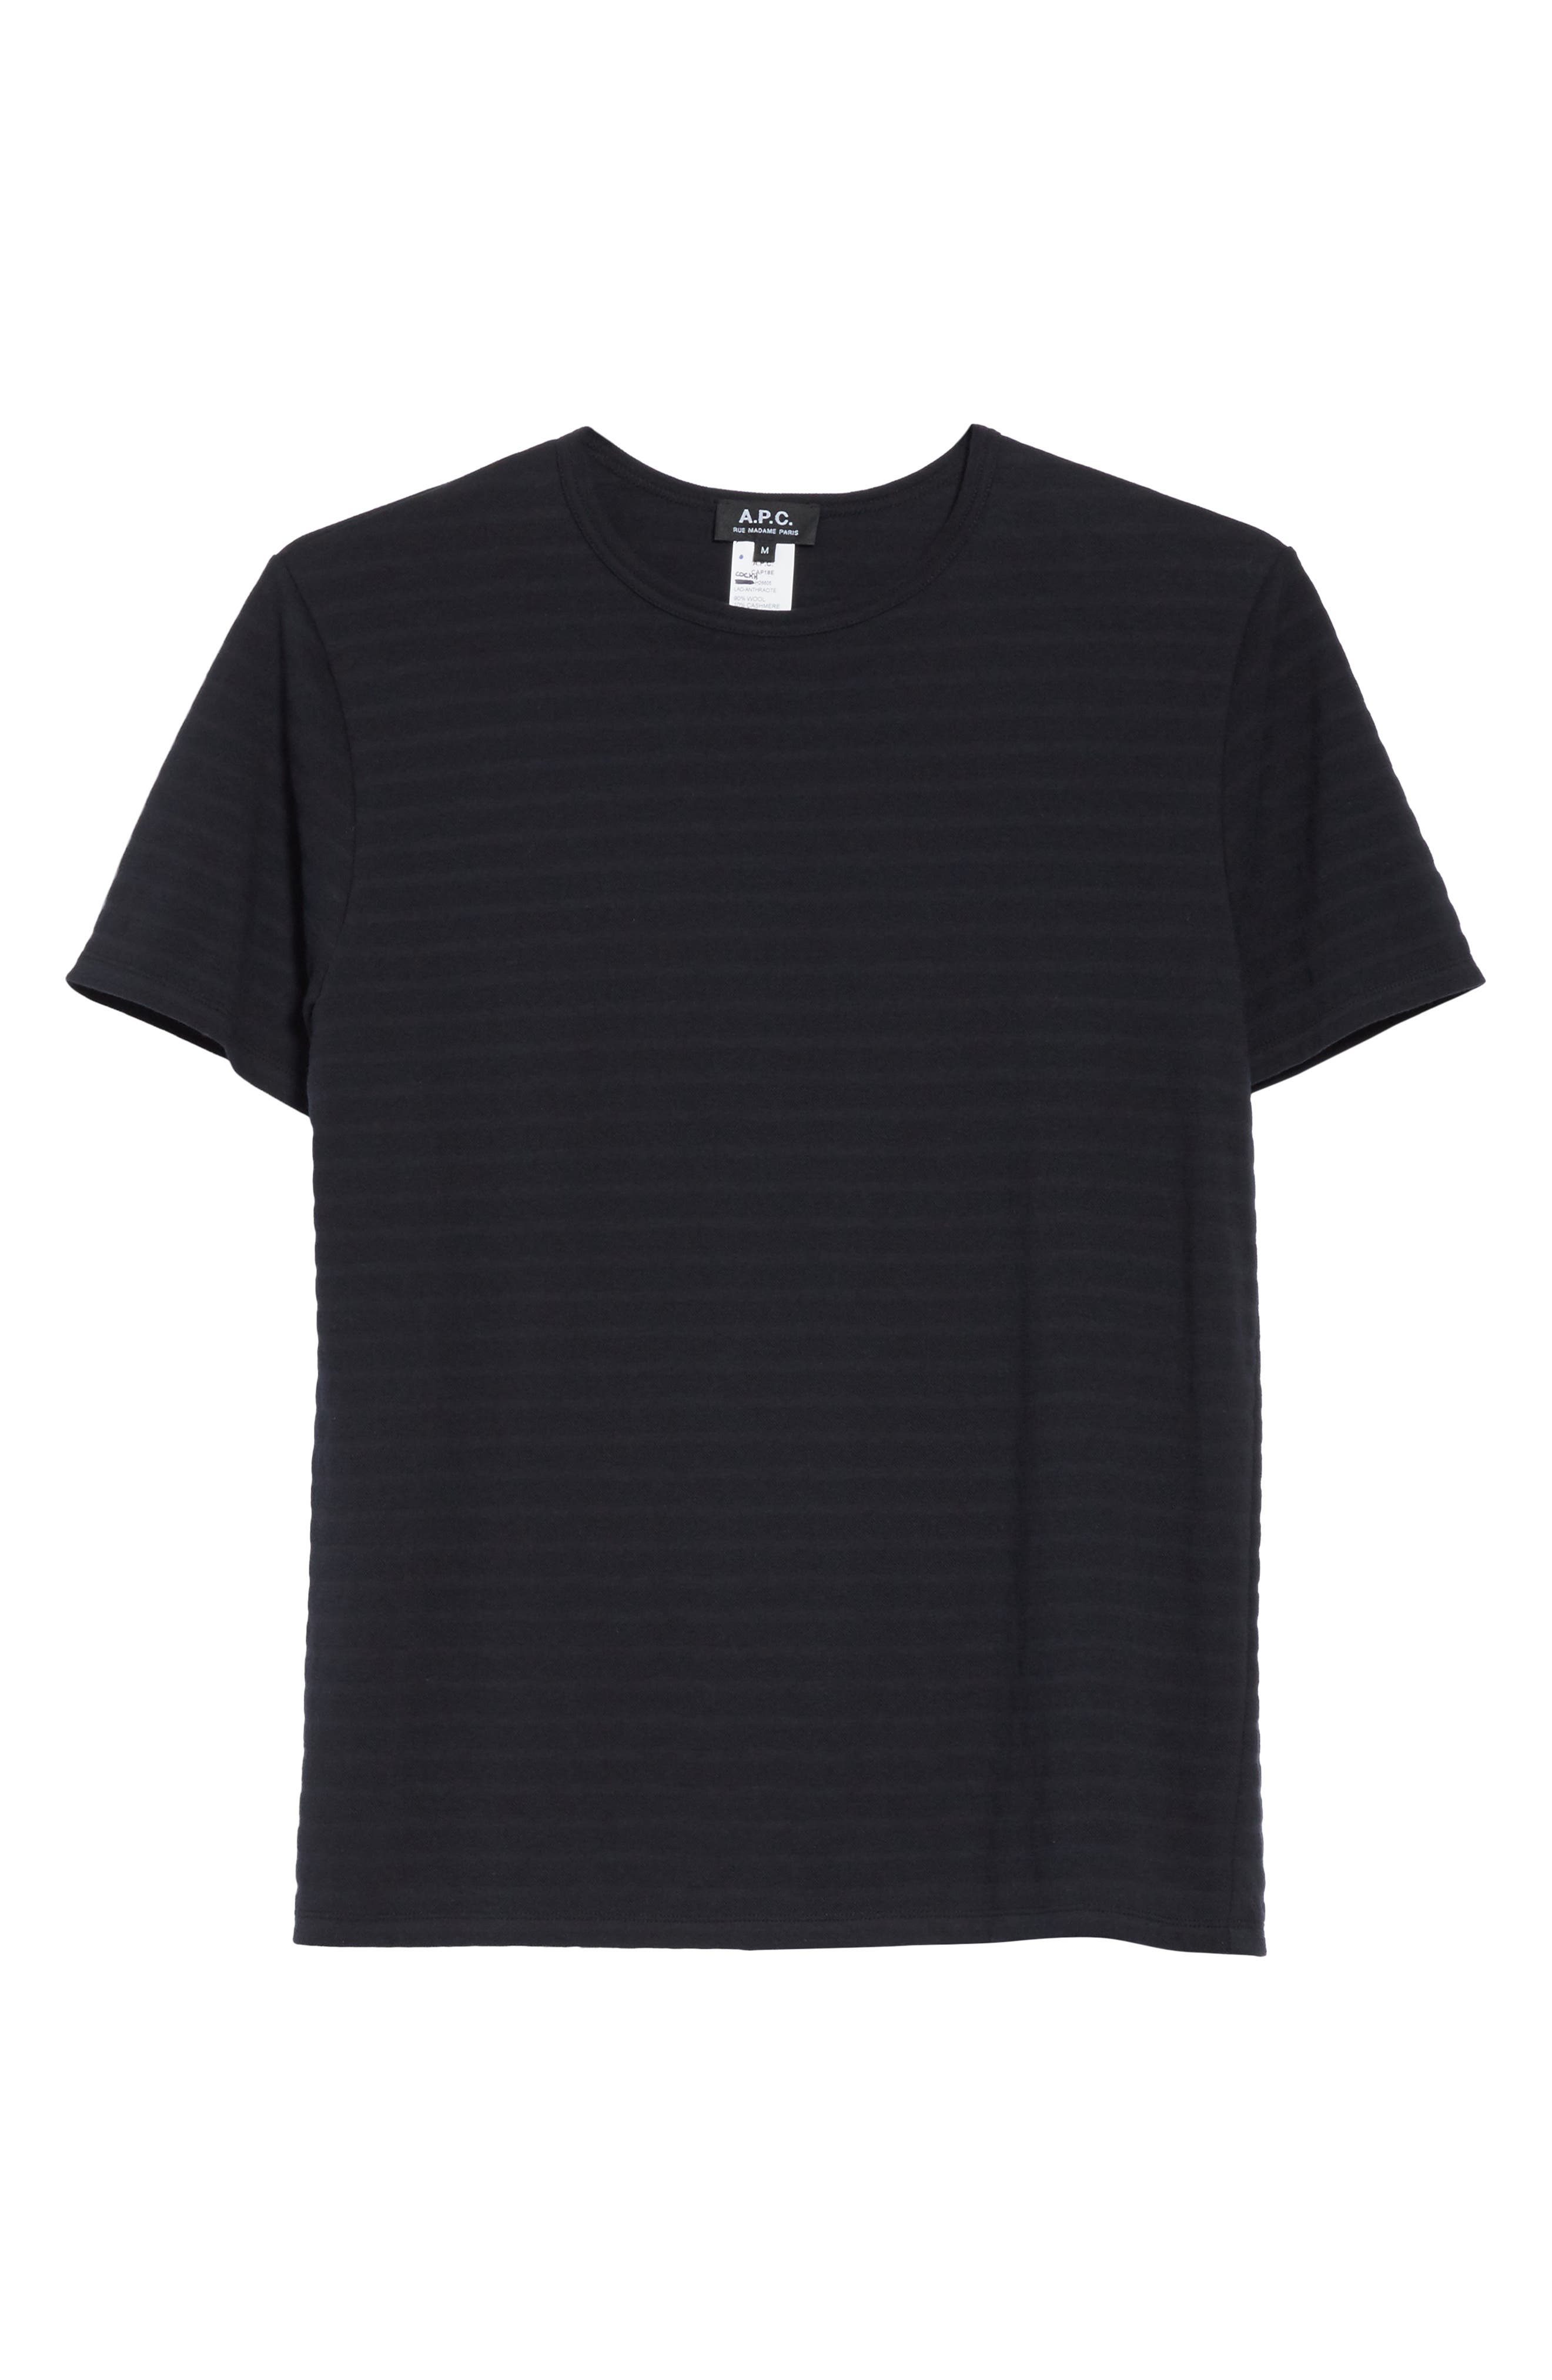 Winston Crewneck T-Shirt,                             Alternate thumbnail 6, color,                             Anthracite